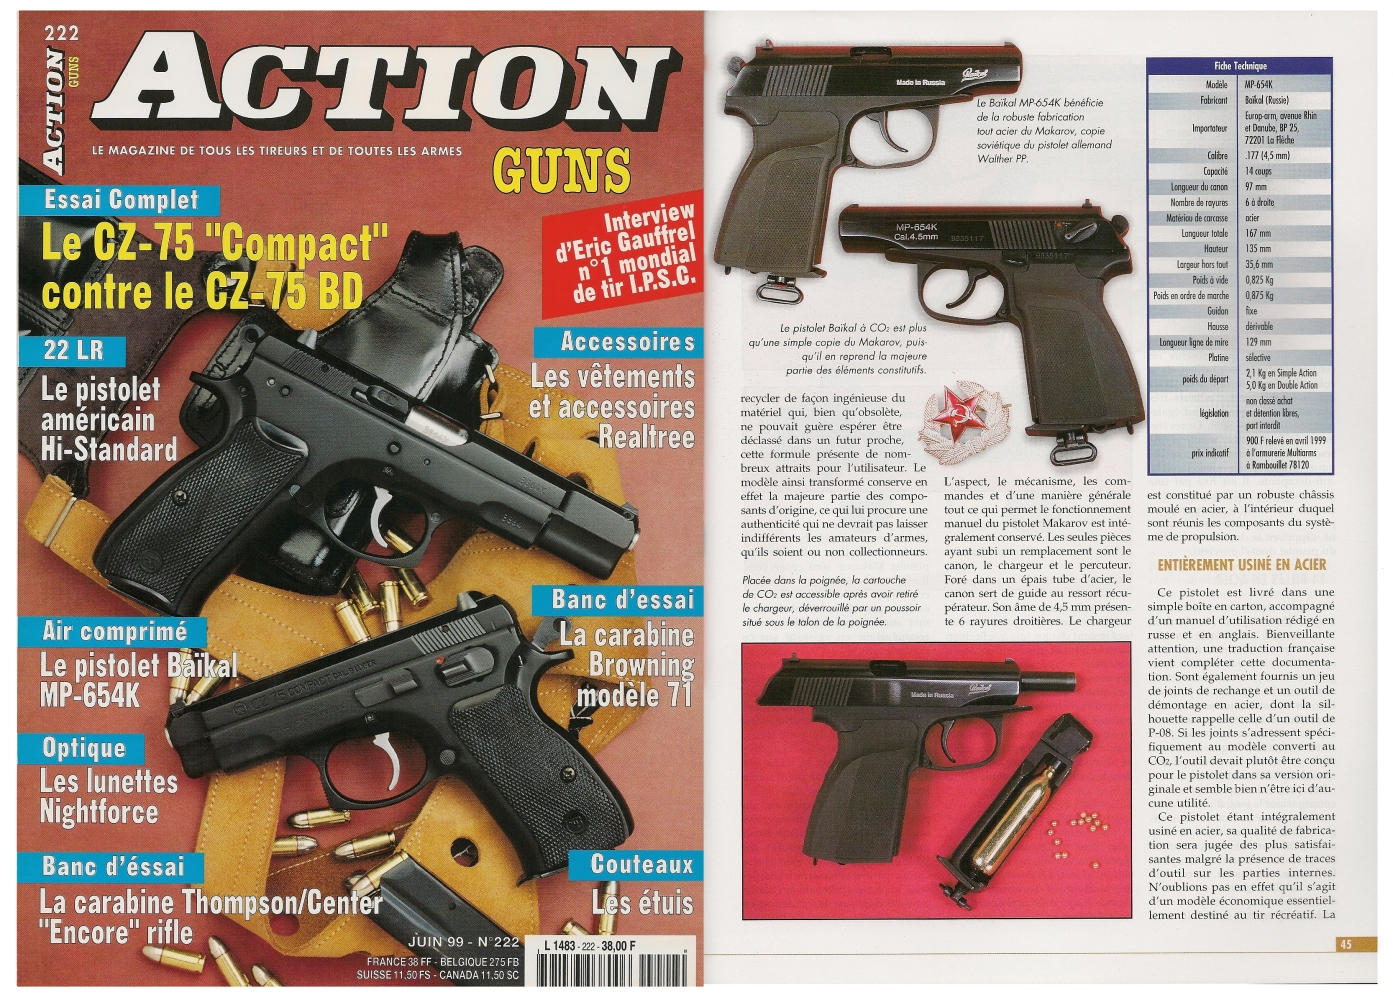 Action Guns n°222_Baïkal MP-654K CO2_petite